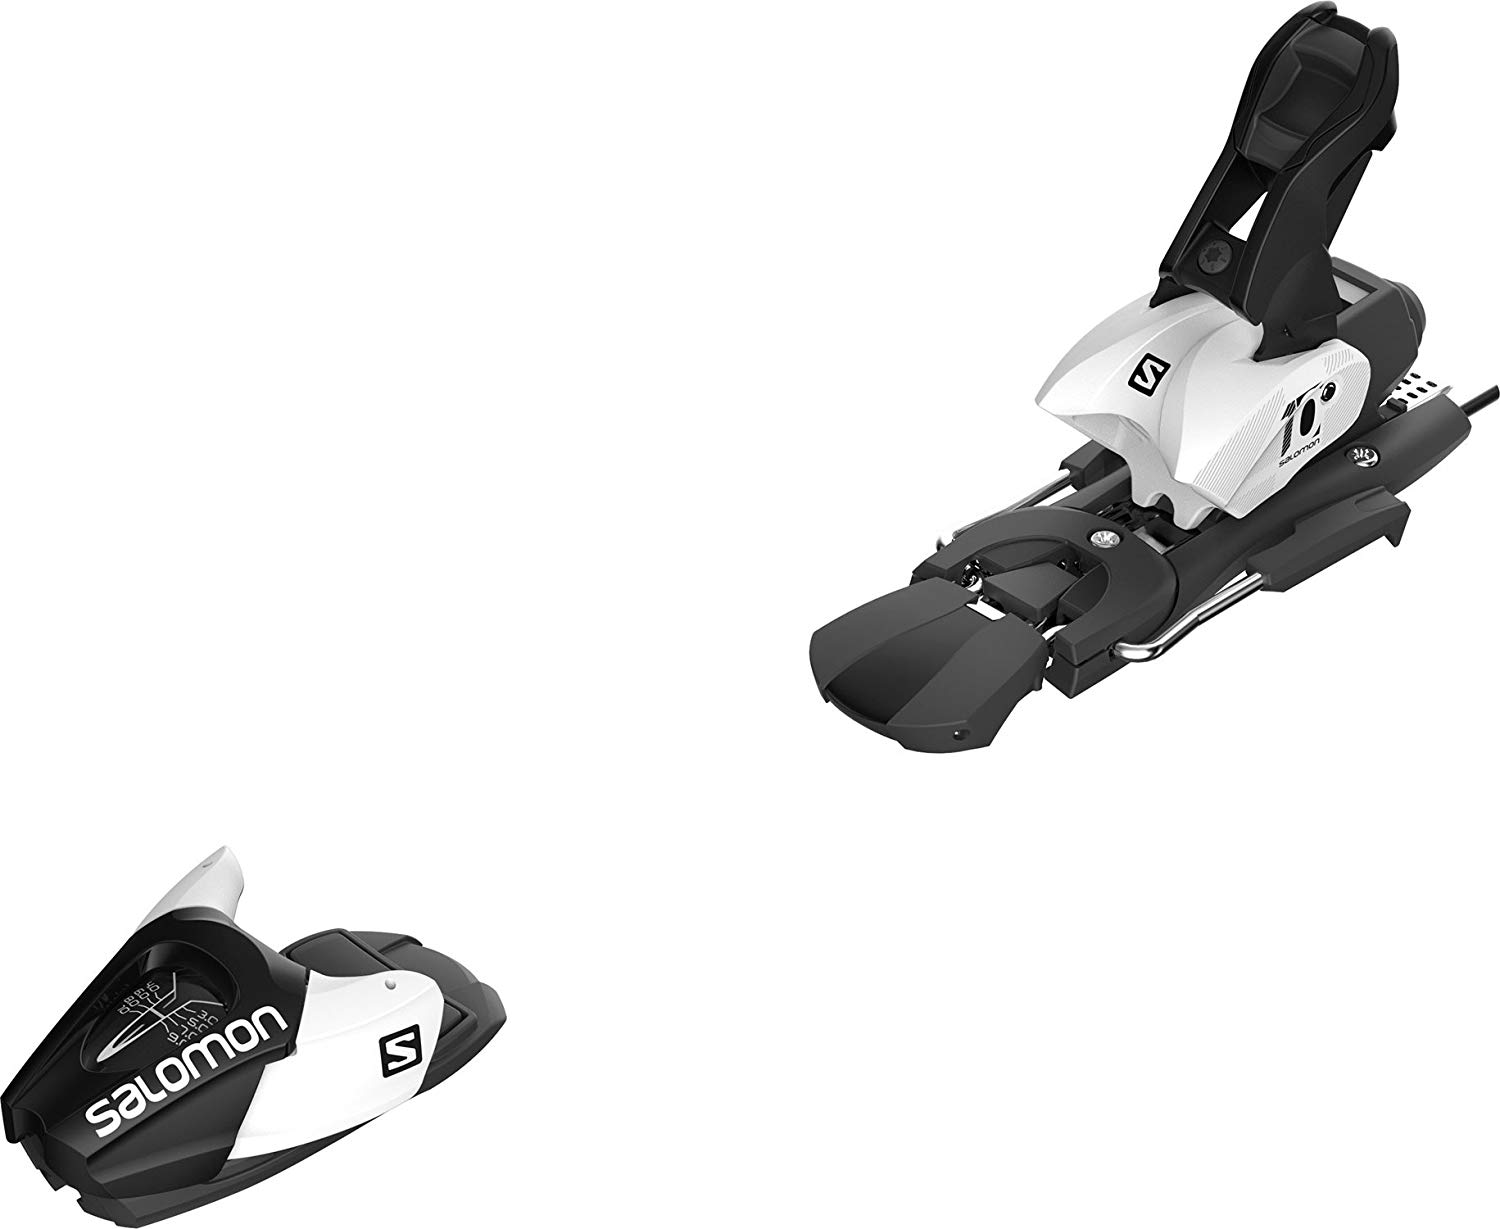 Top 10 Best Ski Bindings Reviews For All Mountains 2021 3